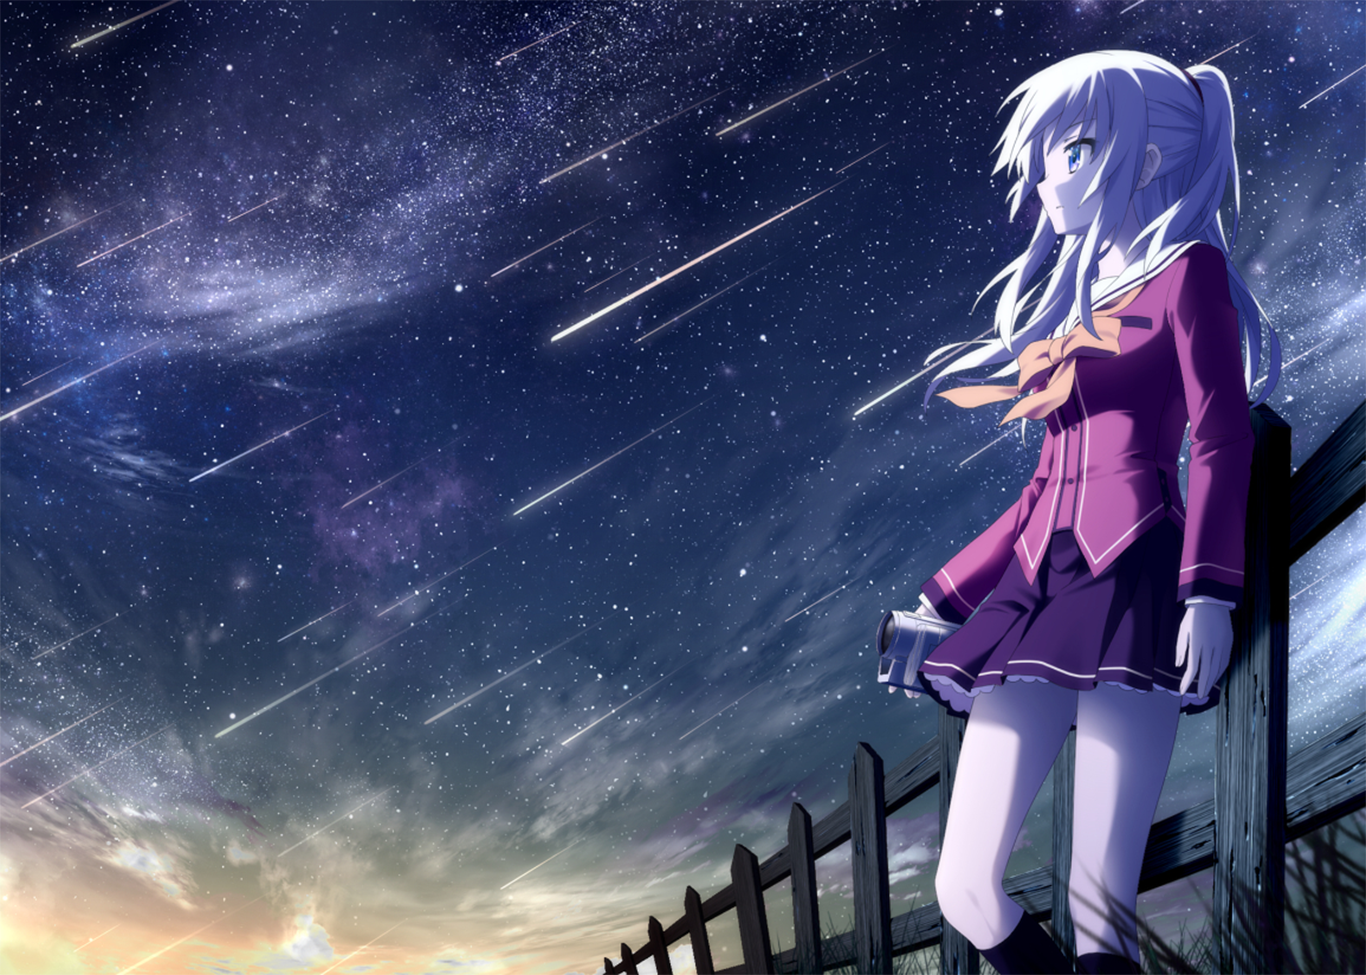 Anime Wallpaper   HD Wallpapers Backgrounds of Your Choice 1366x975